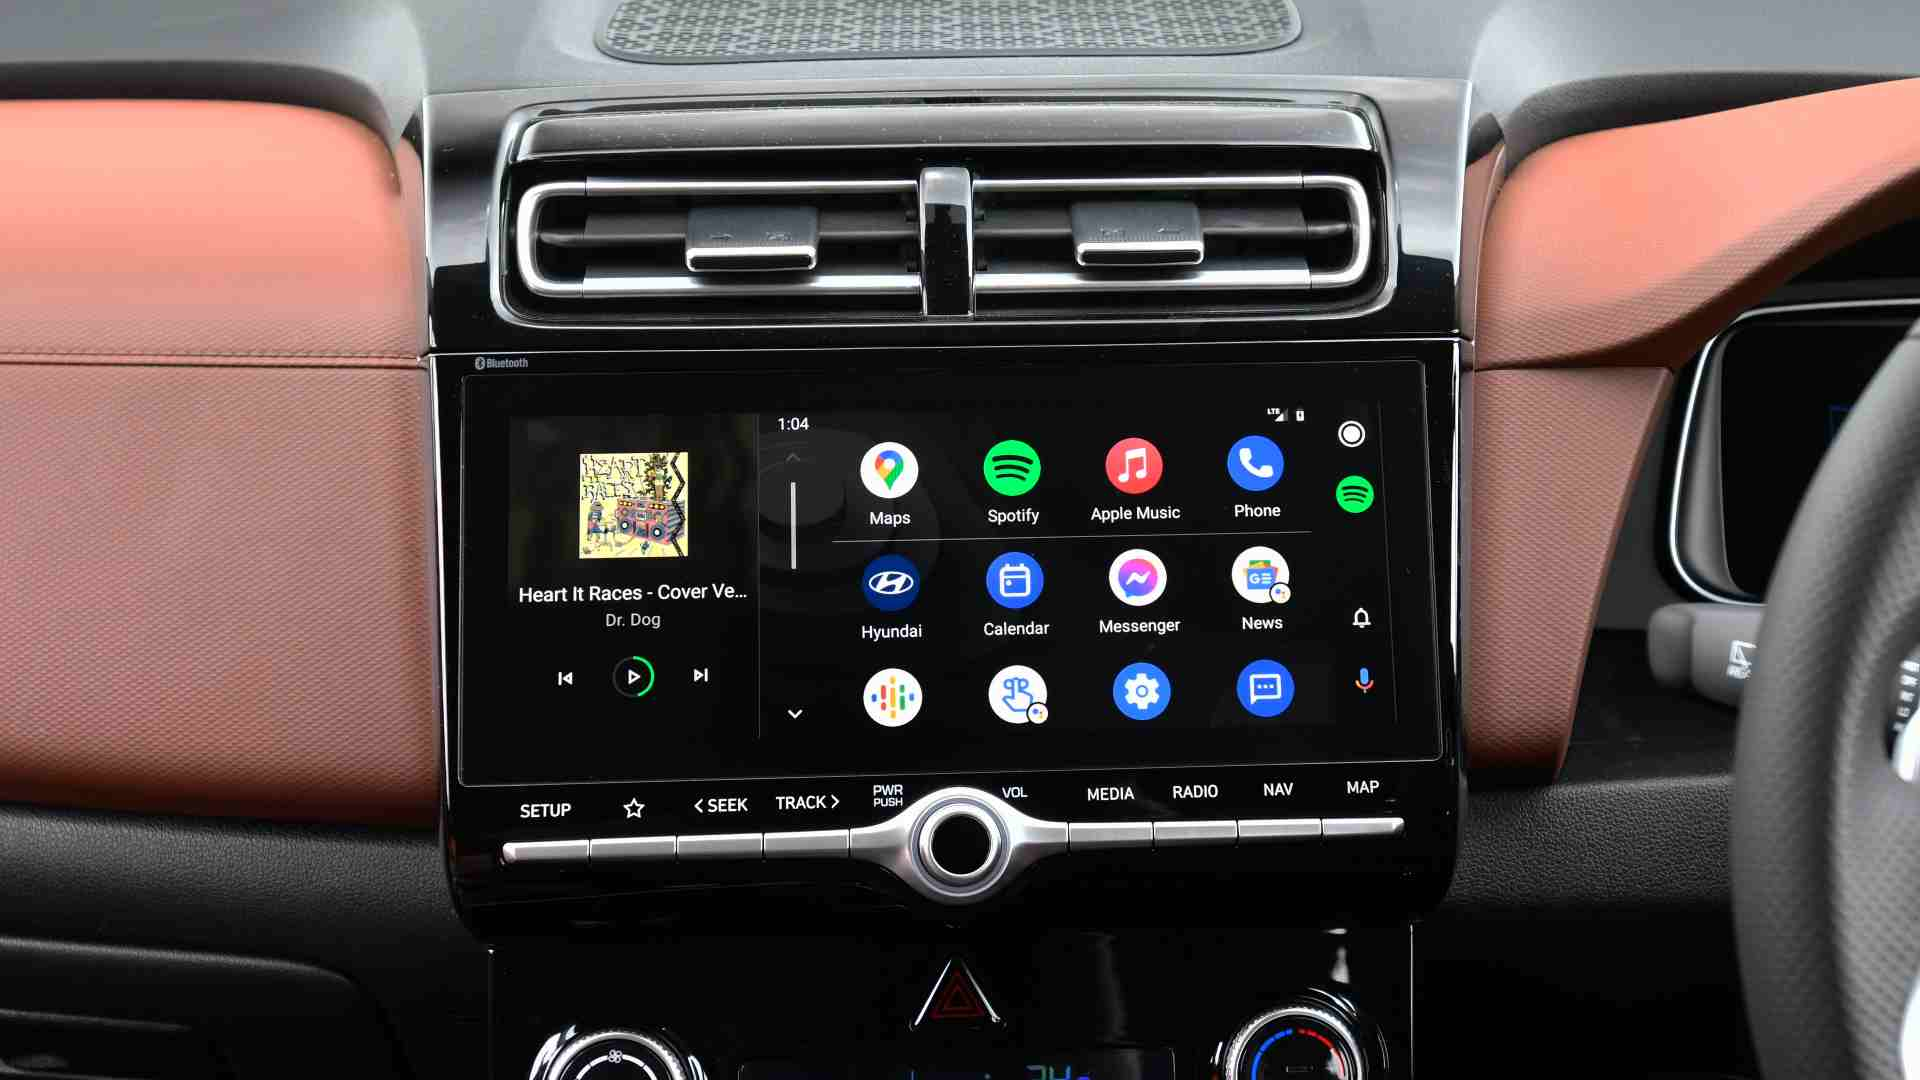 10.25-inch touchscreen is fluid and responsive, but icon layout a bit cluttered. Image: Hyundai